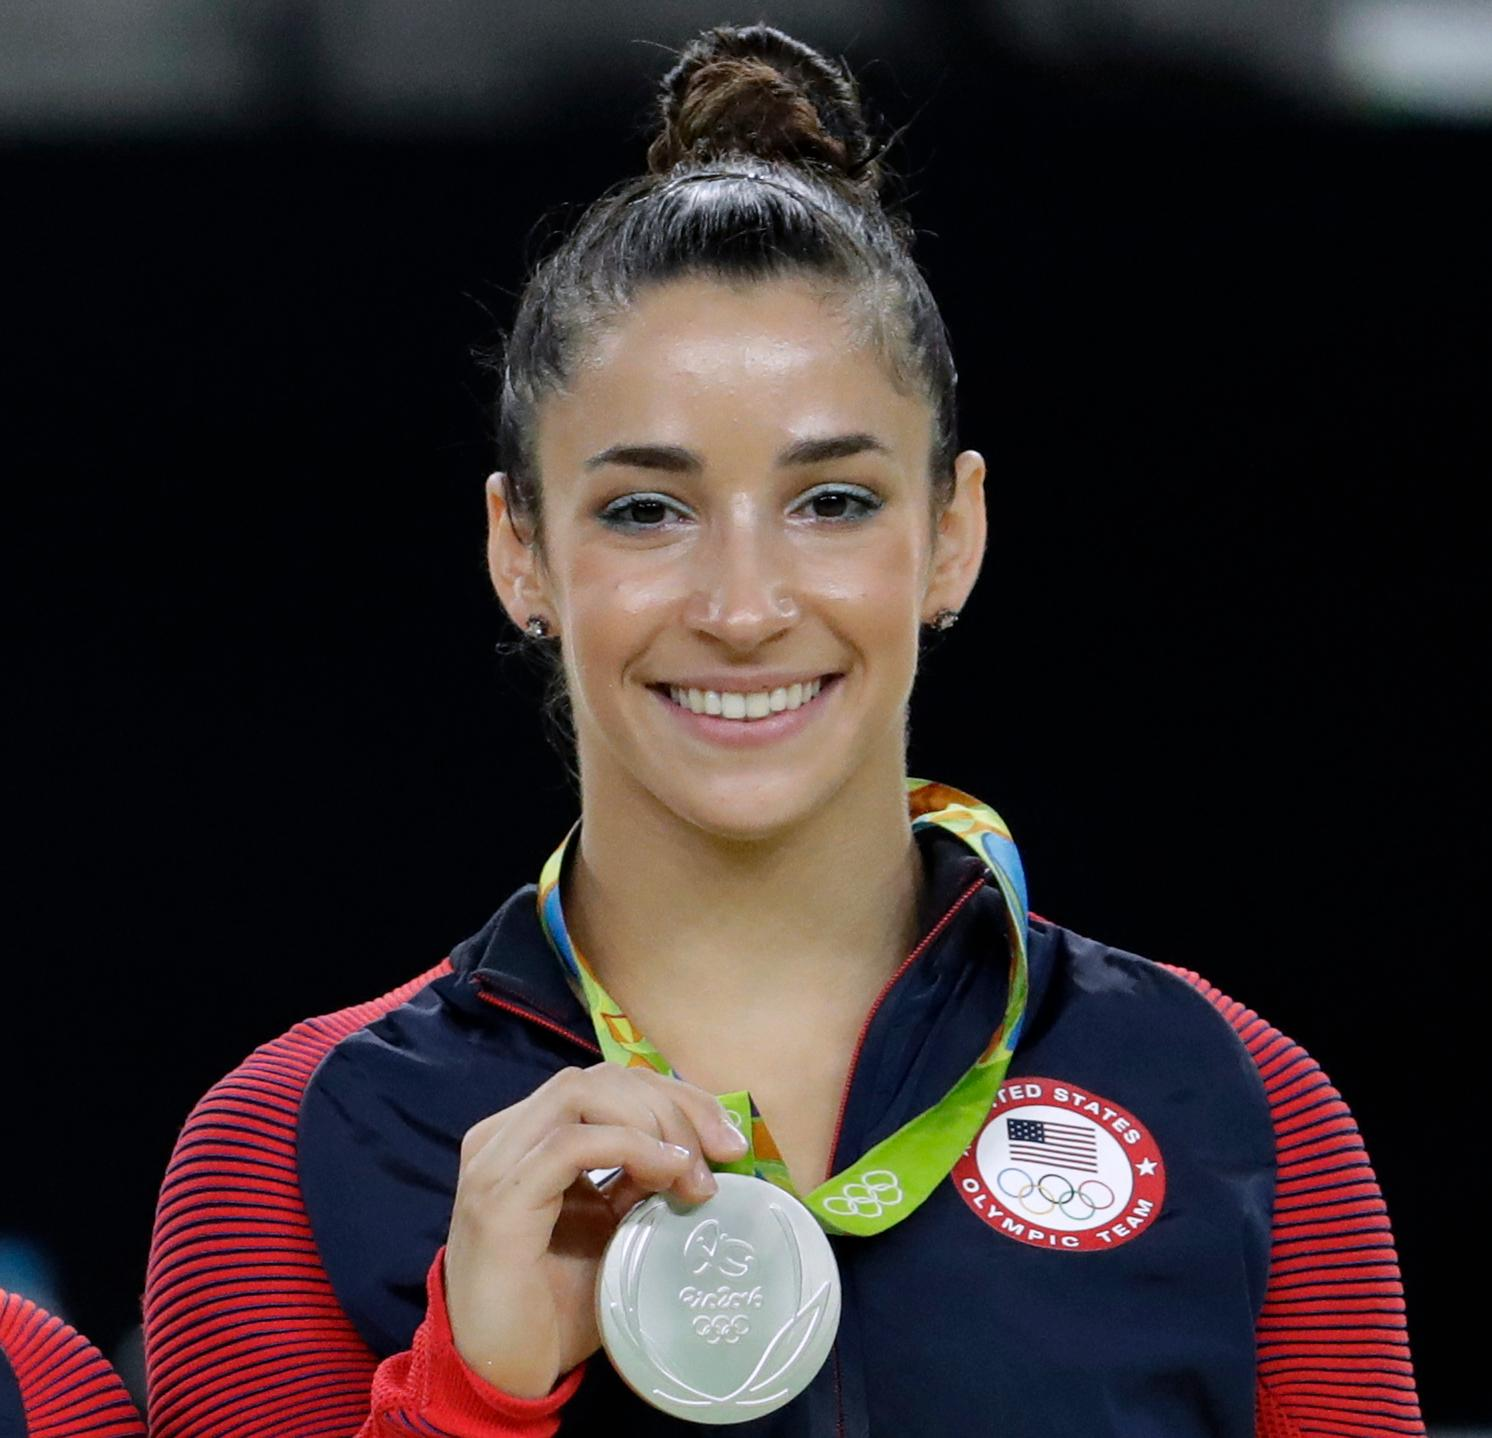 FILE - In this Aug. 16, 2016, file photo, United States' Aly Raisman shows off her silver medal after the artistic gymnastics women's apparatus final at the 2016 Summer Olympics in Rio de Janeiro, Brazil. (AP Photo/Dmitri Lovetsky, FIle)